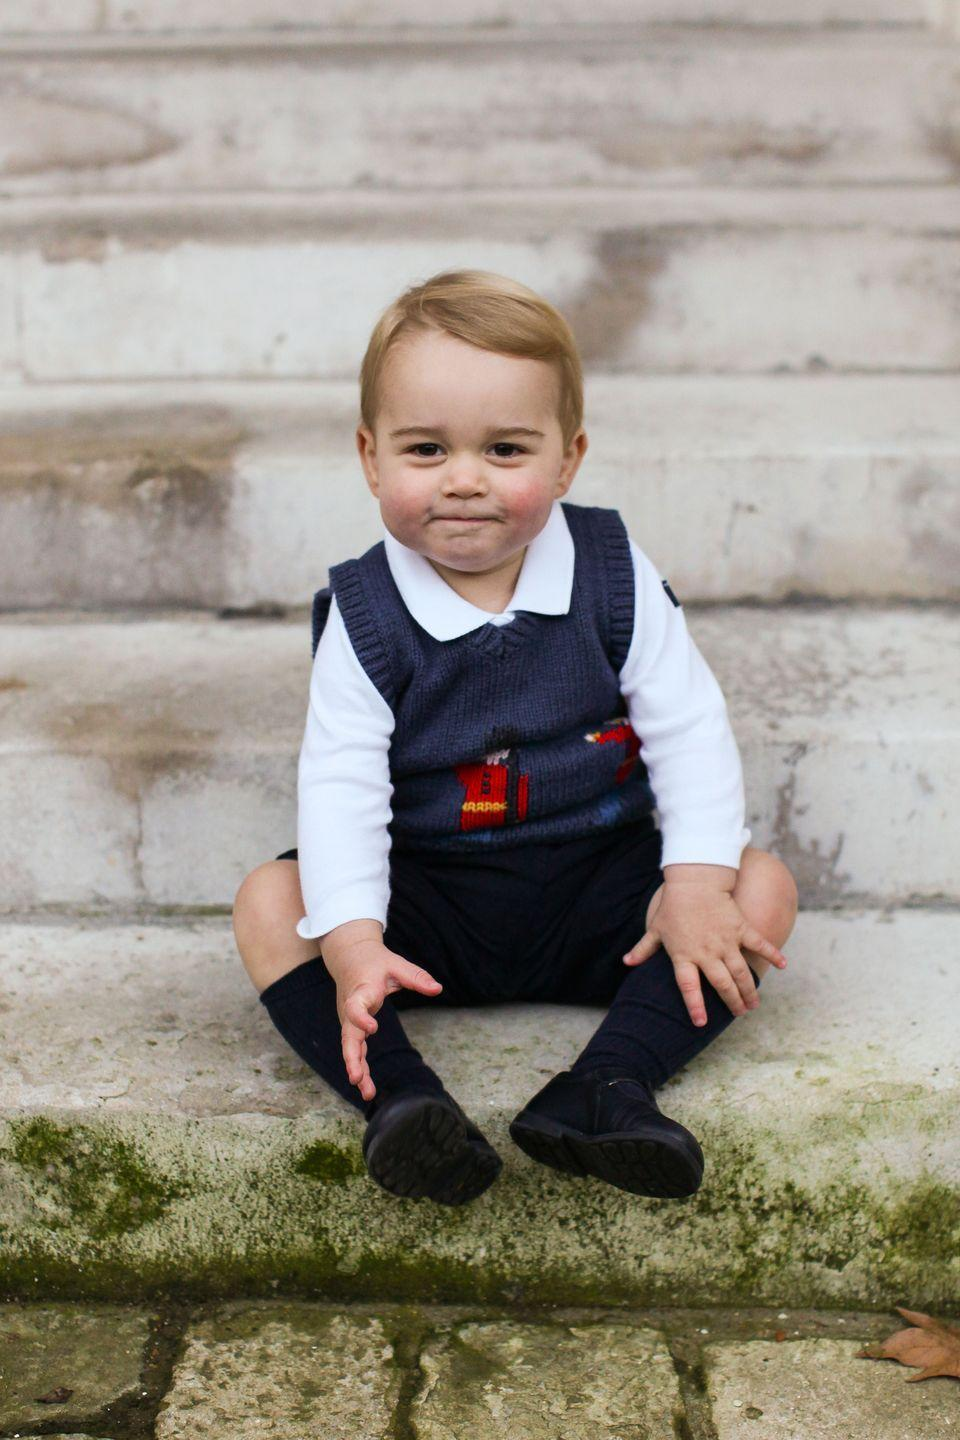 <p>Prince George sits on the steps of Kensington Palace ahead of his first-ever Christmas with the royal family in December 2014. The photo, which features George in a jumper with a guardsman pattern, was part of a trio taken by Prince Harry's private secretary Edward Lane Fox.</p>